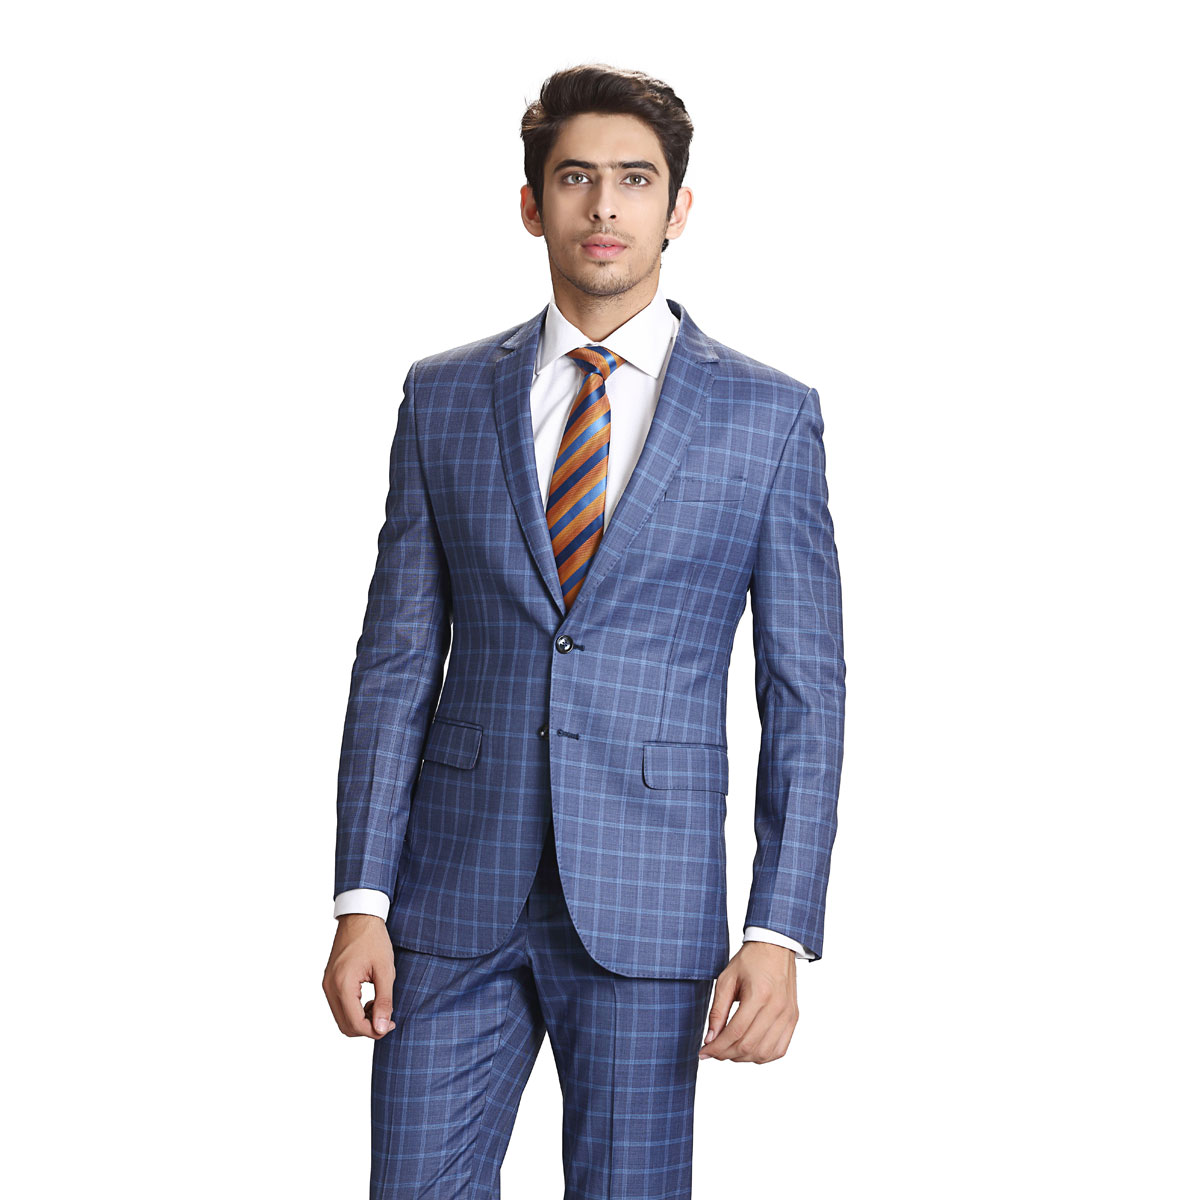 Blue Blood Check Suit - Best Bespoke Suits. Premium Custom